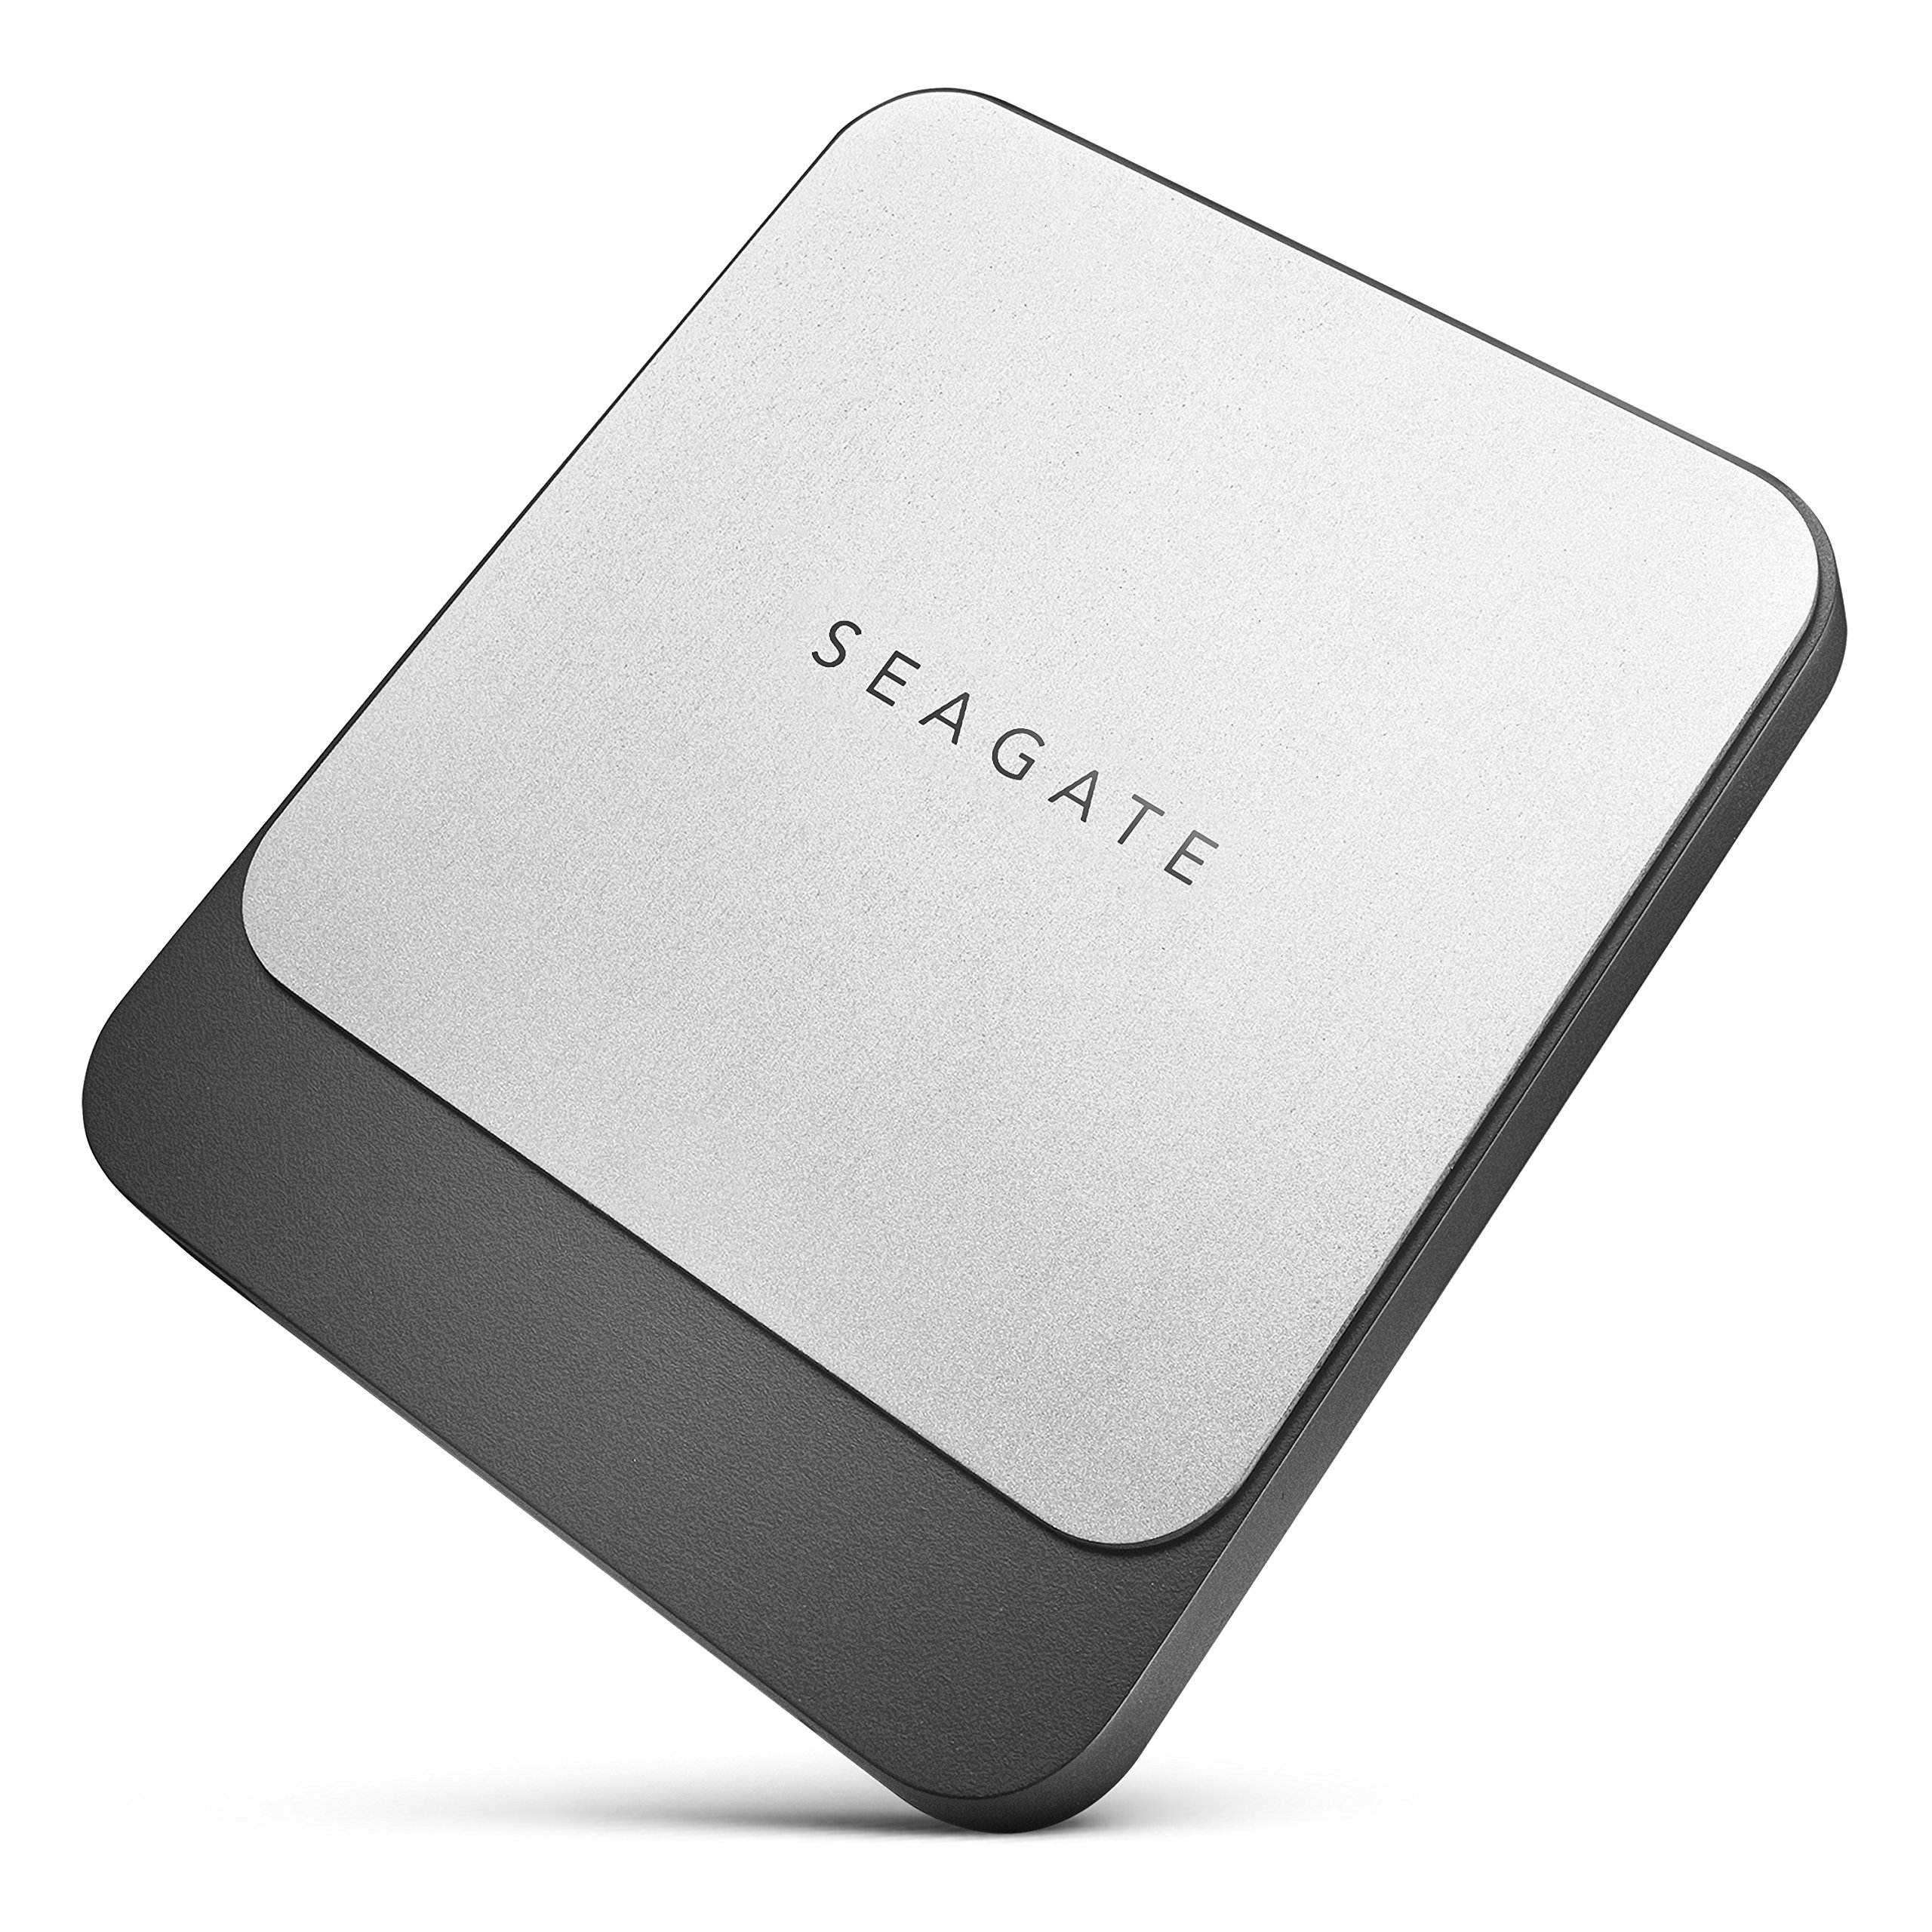 Seagate Fast SSD 500GB External Solid State Drive Portable - USB-C USB 3.0 for PC Laptop and Mac, 2 Months Adobe CC Photography (STCM500400) by Seagate (Image #1)